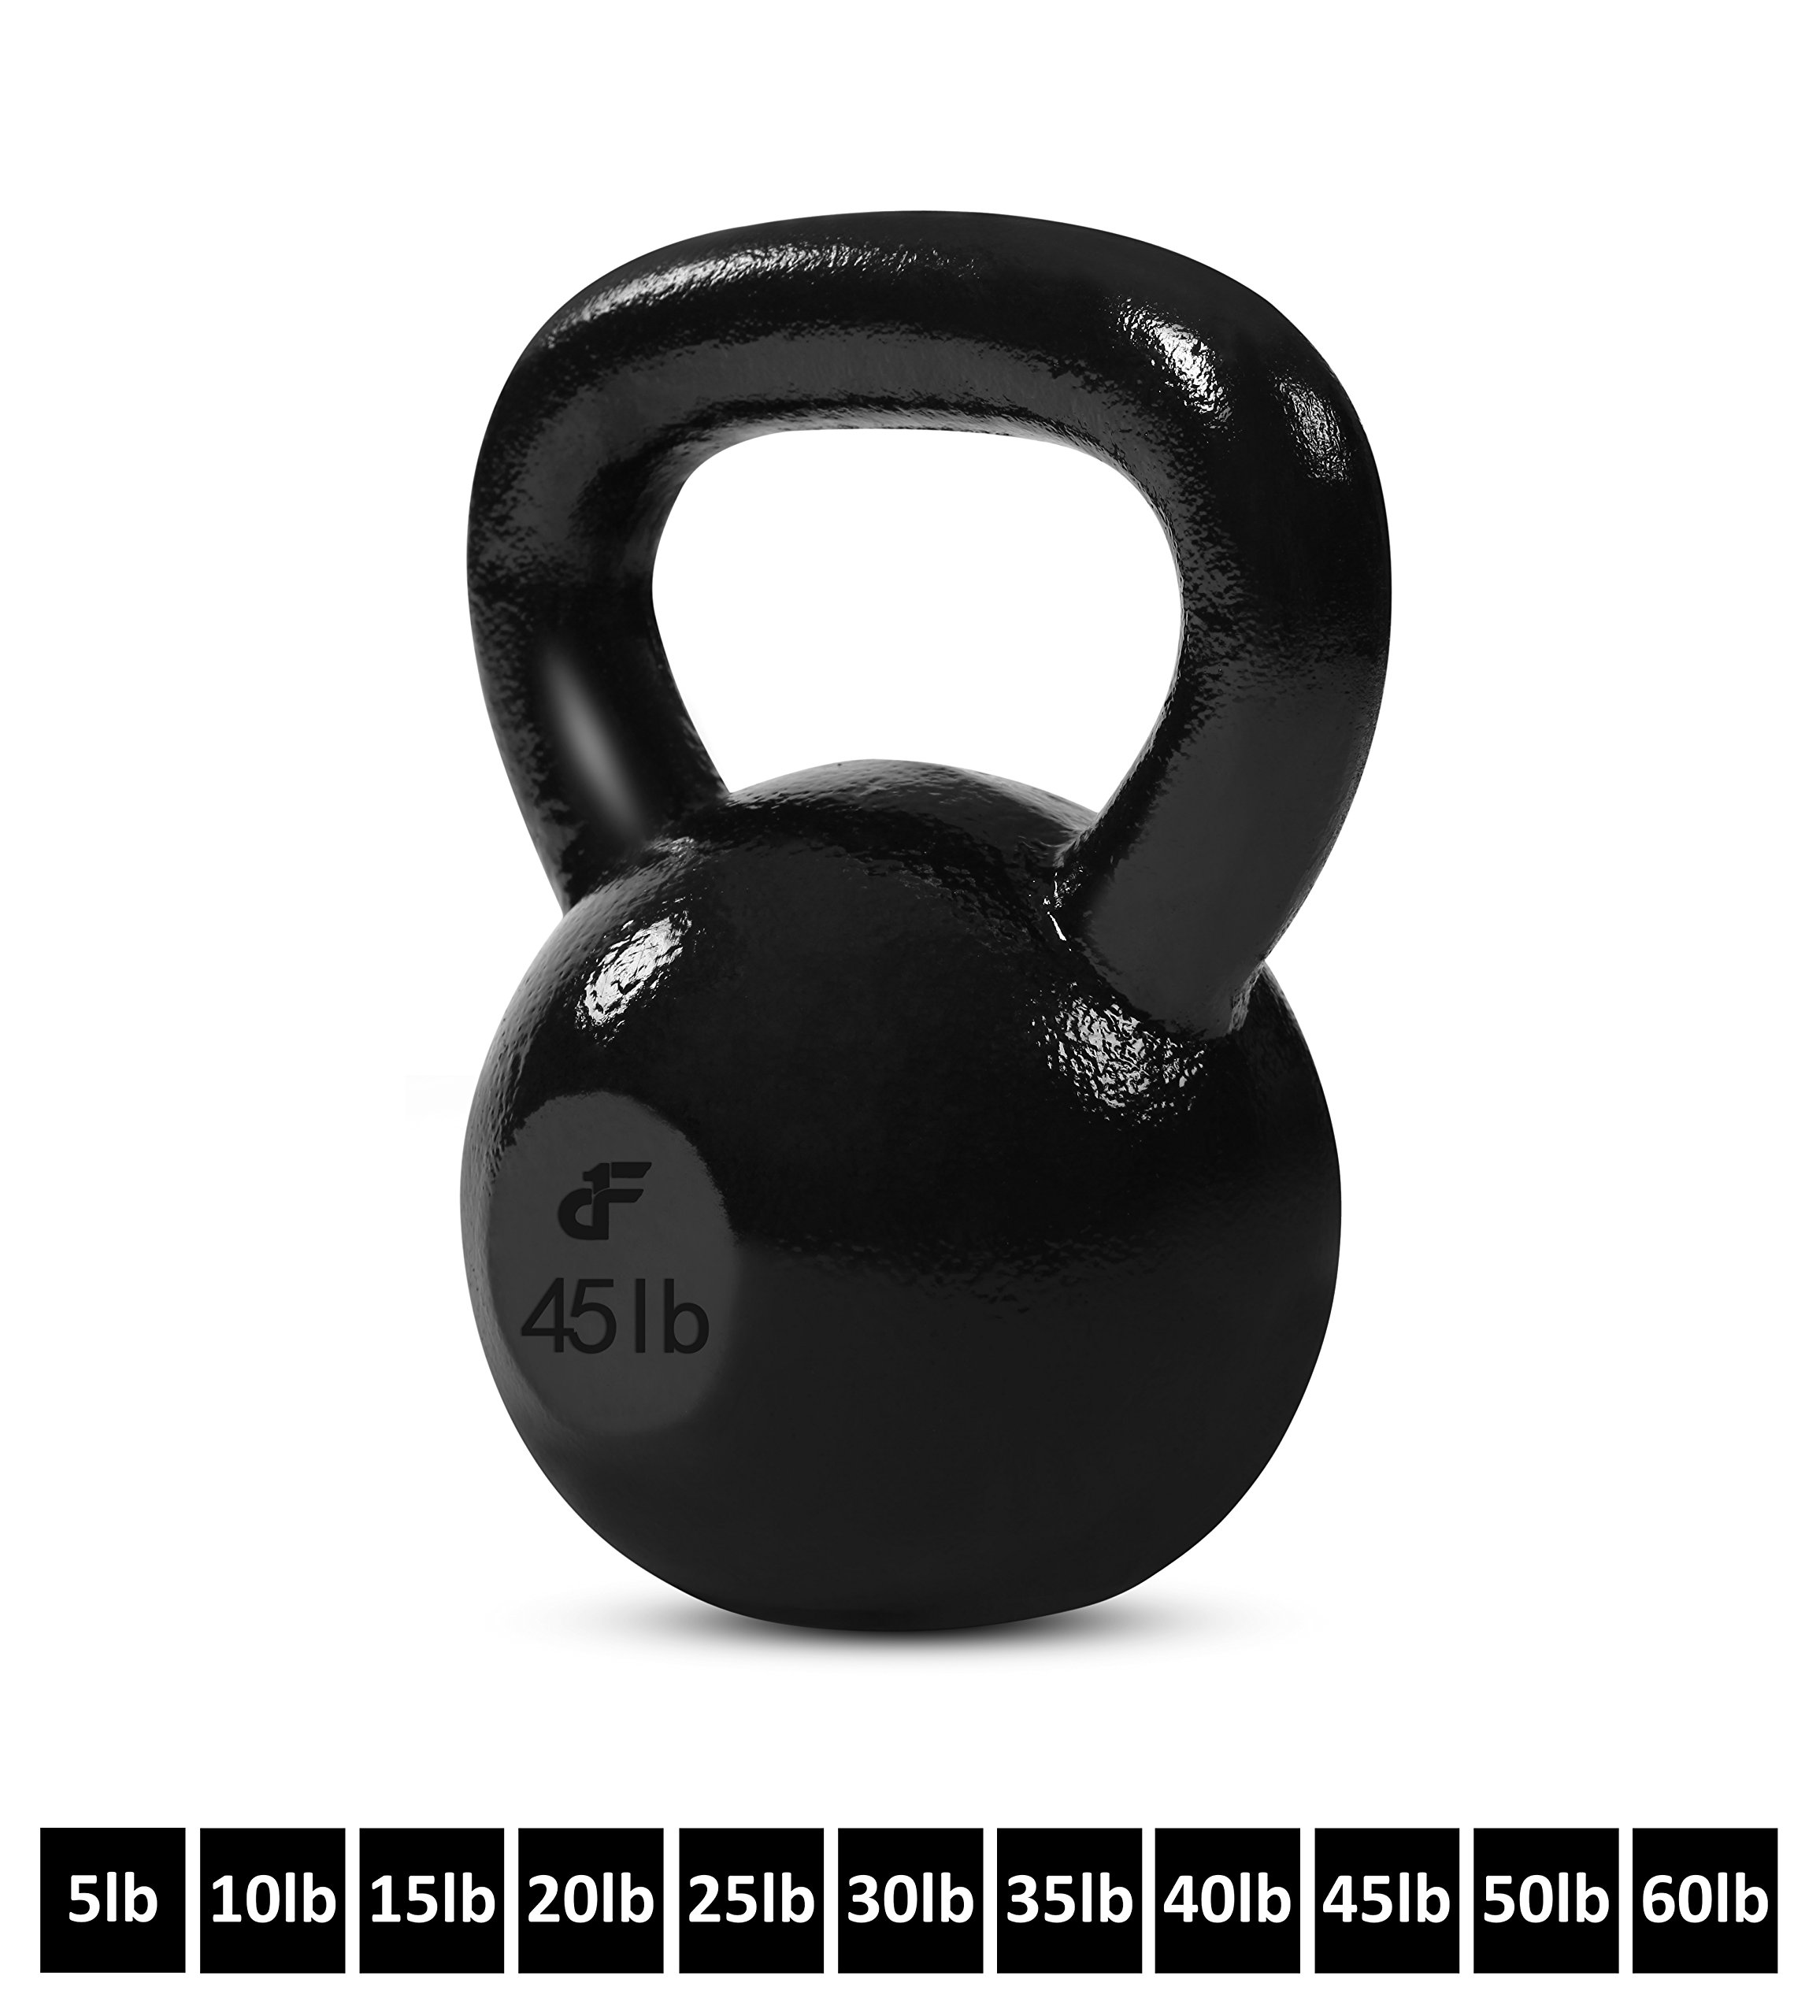 Day 1 Fitness Kettlebell Weights Cast Iron 45 Pounds - Ballistic Exercise, Core Strength, Functional Fitness, and Weight Training Set - Free Weight, Equipment, Accessories